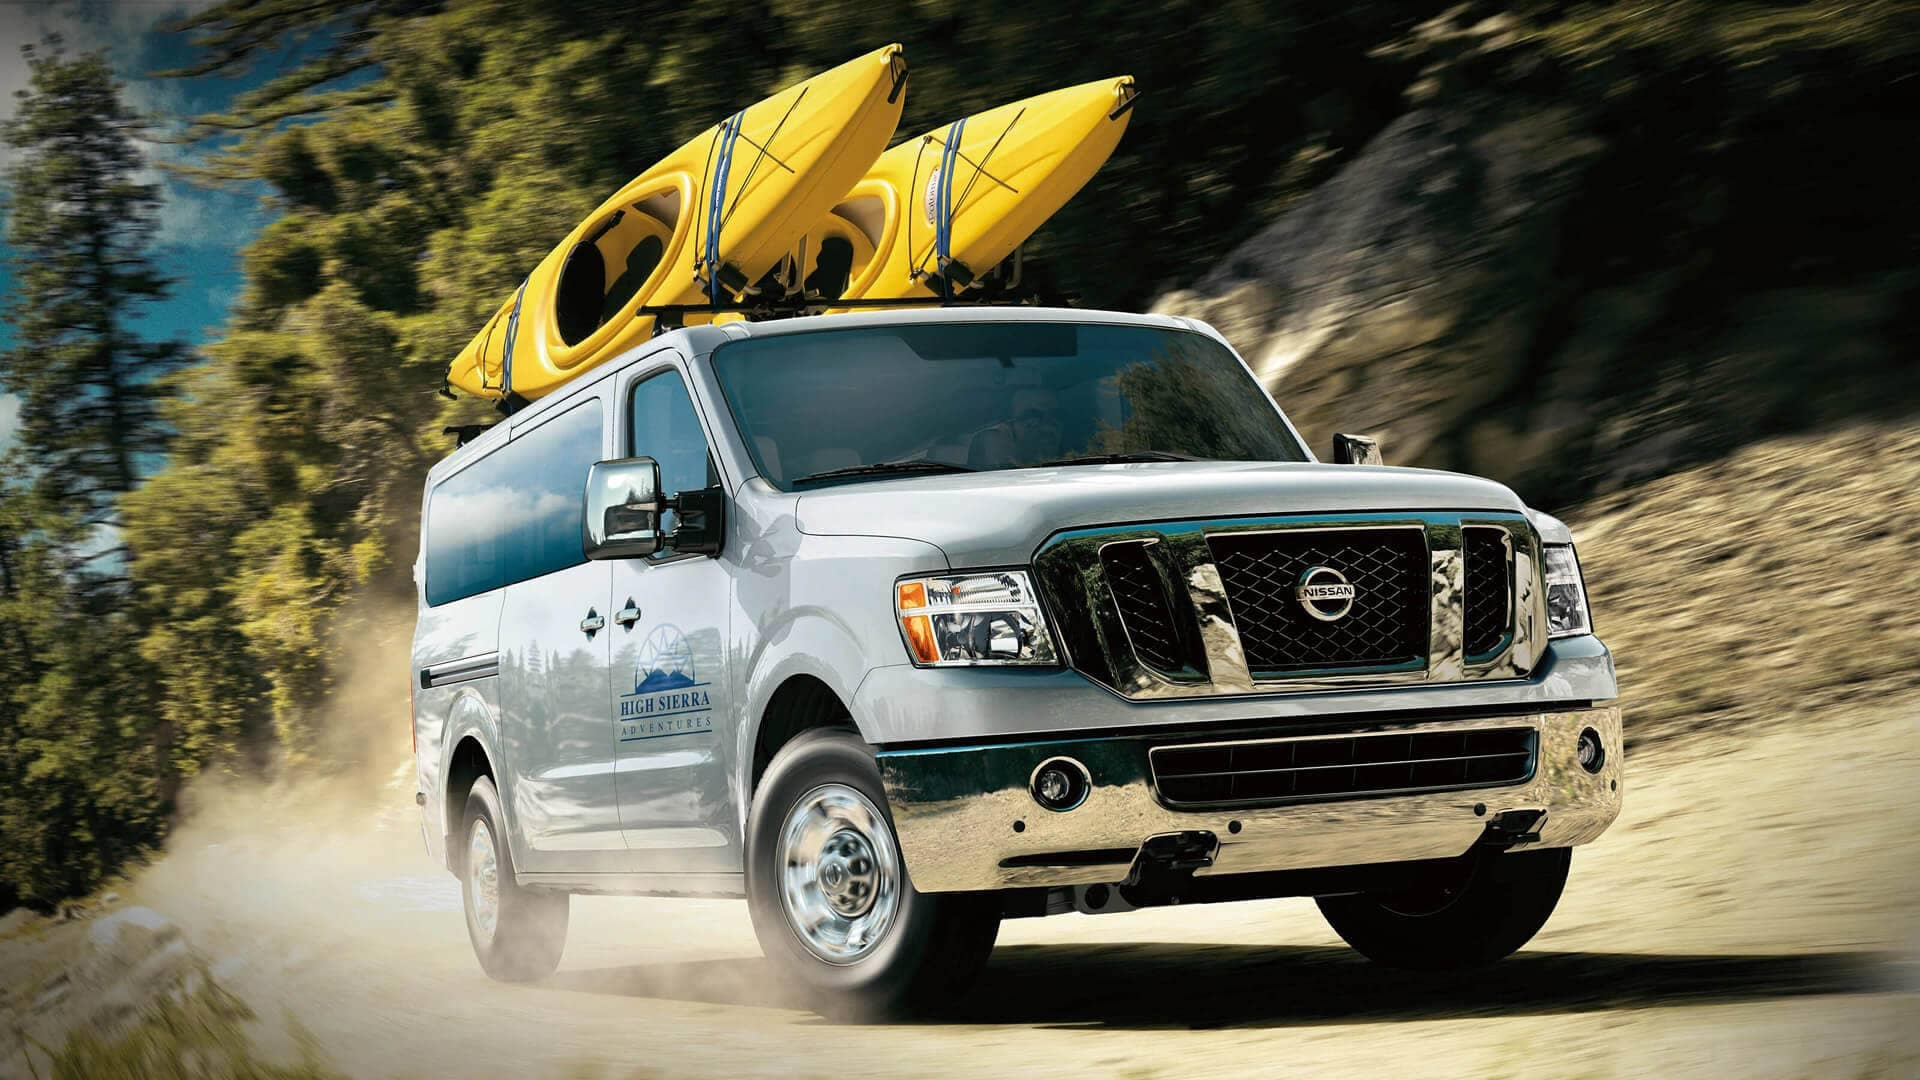 2020 Nissan NV Passenger with two kayaks on top driving on mountain road